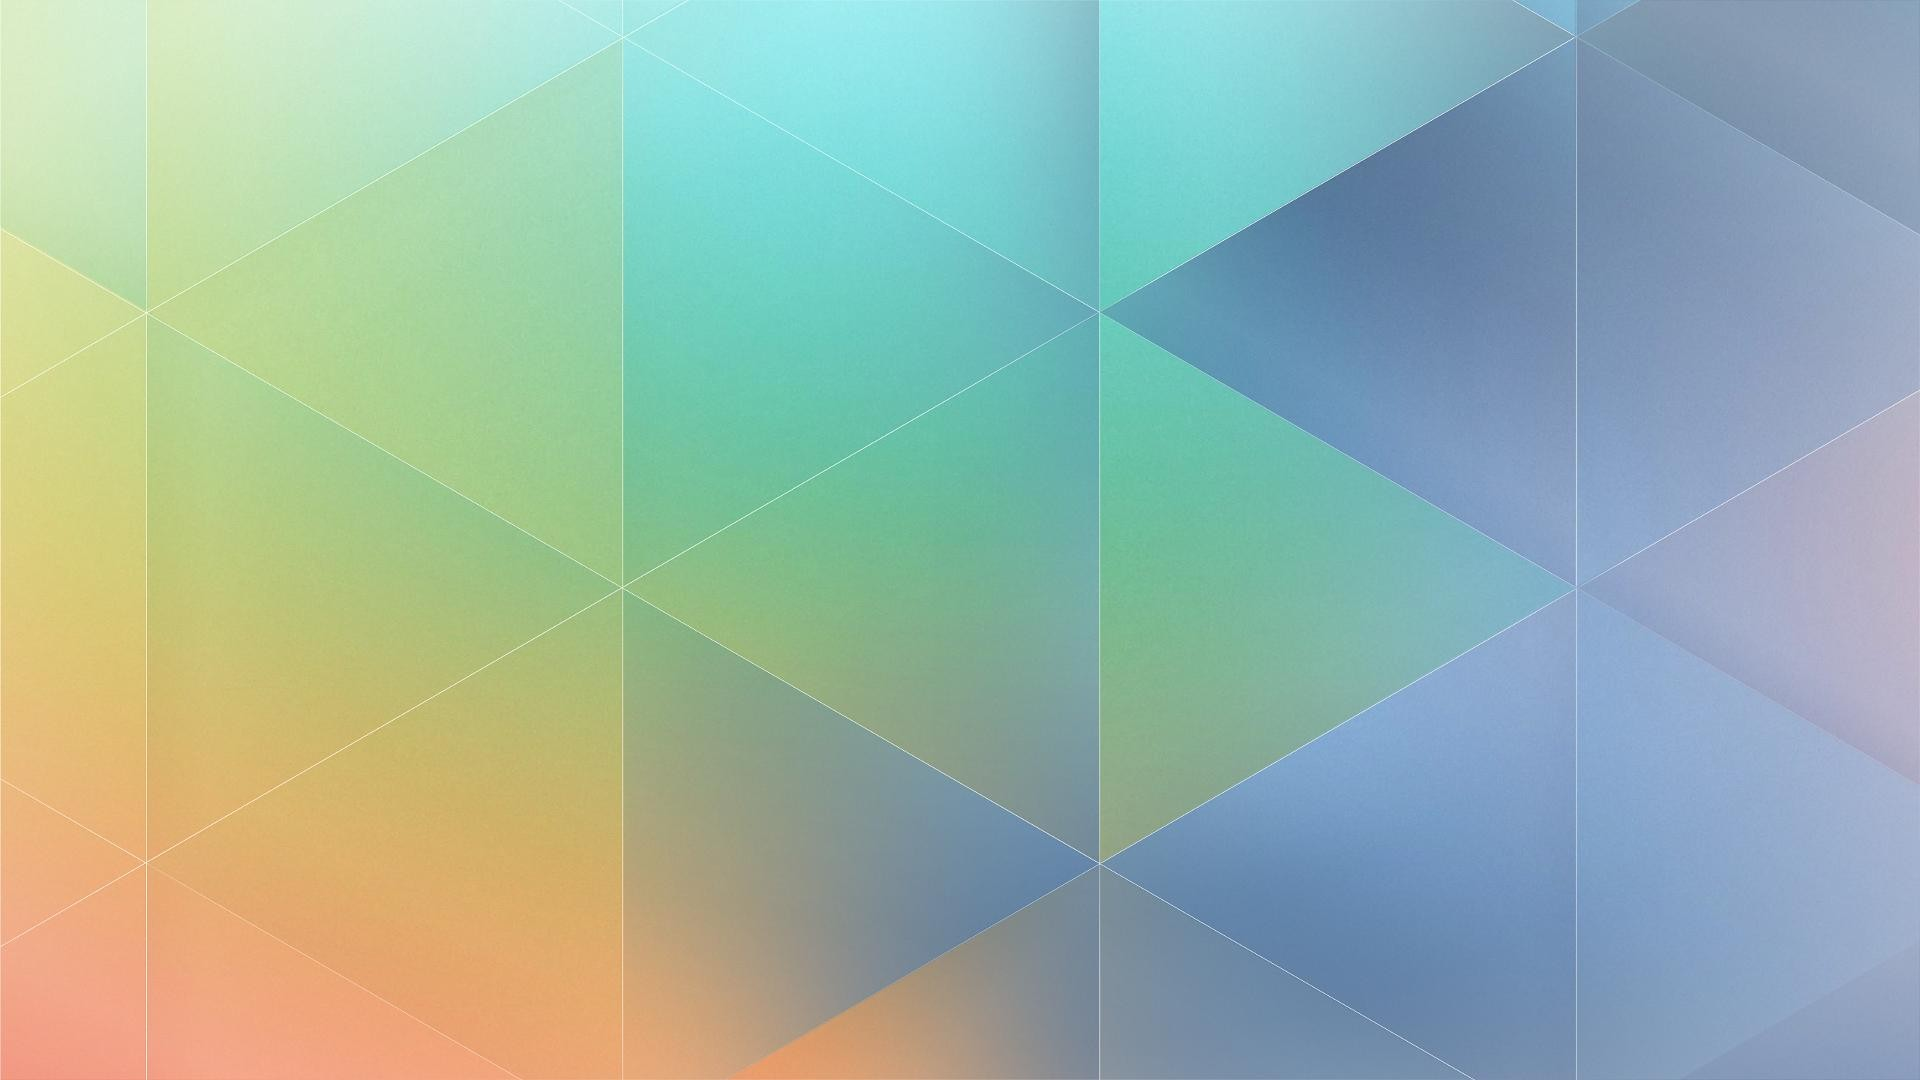 2048x1152 Abstract Lines HD 2048x1152 Resolution HD 4k